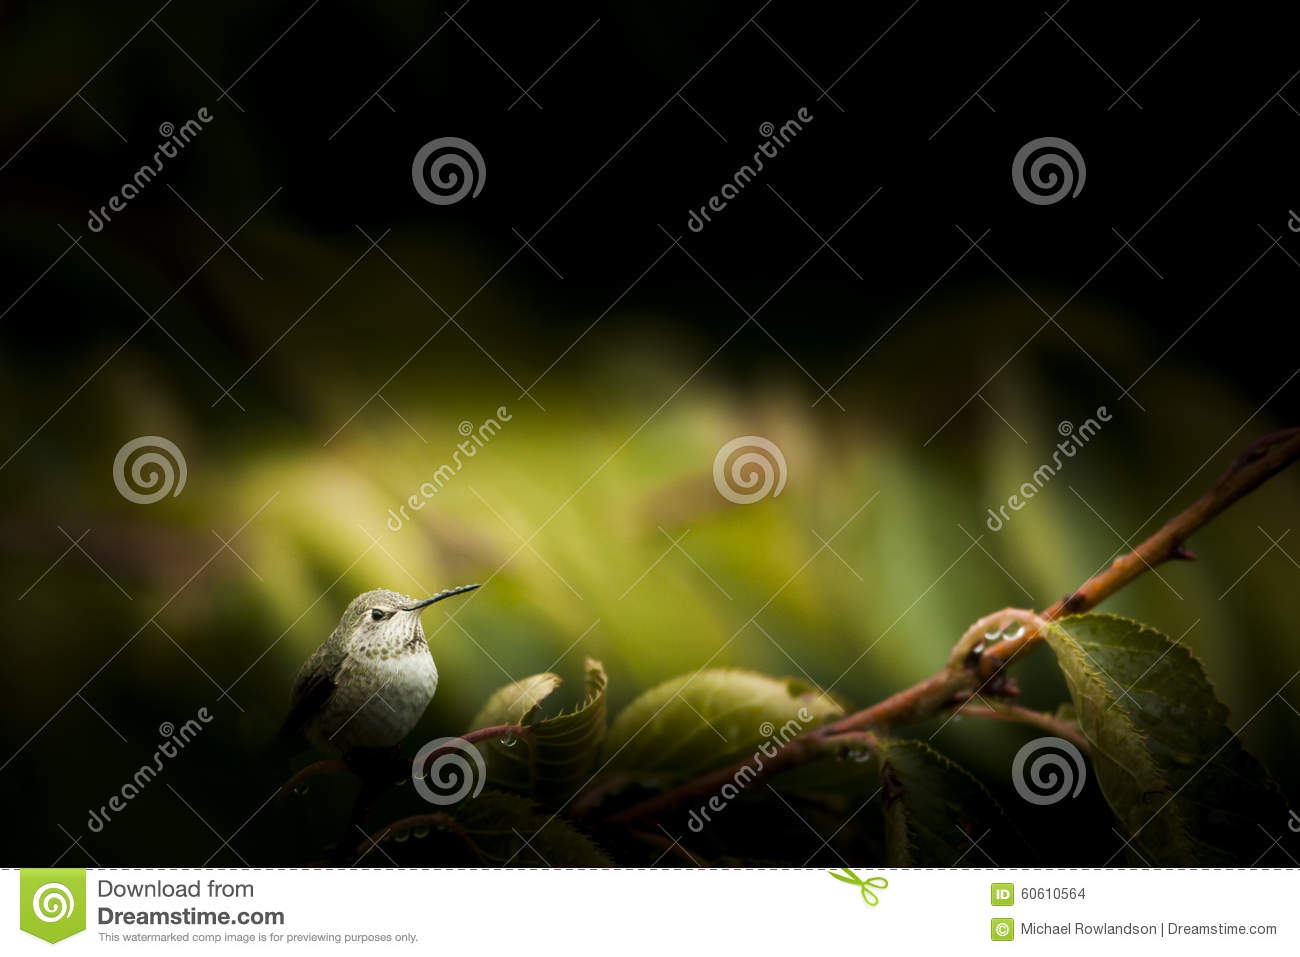 Hummingbird Perched on Branch